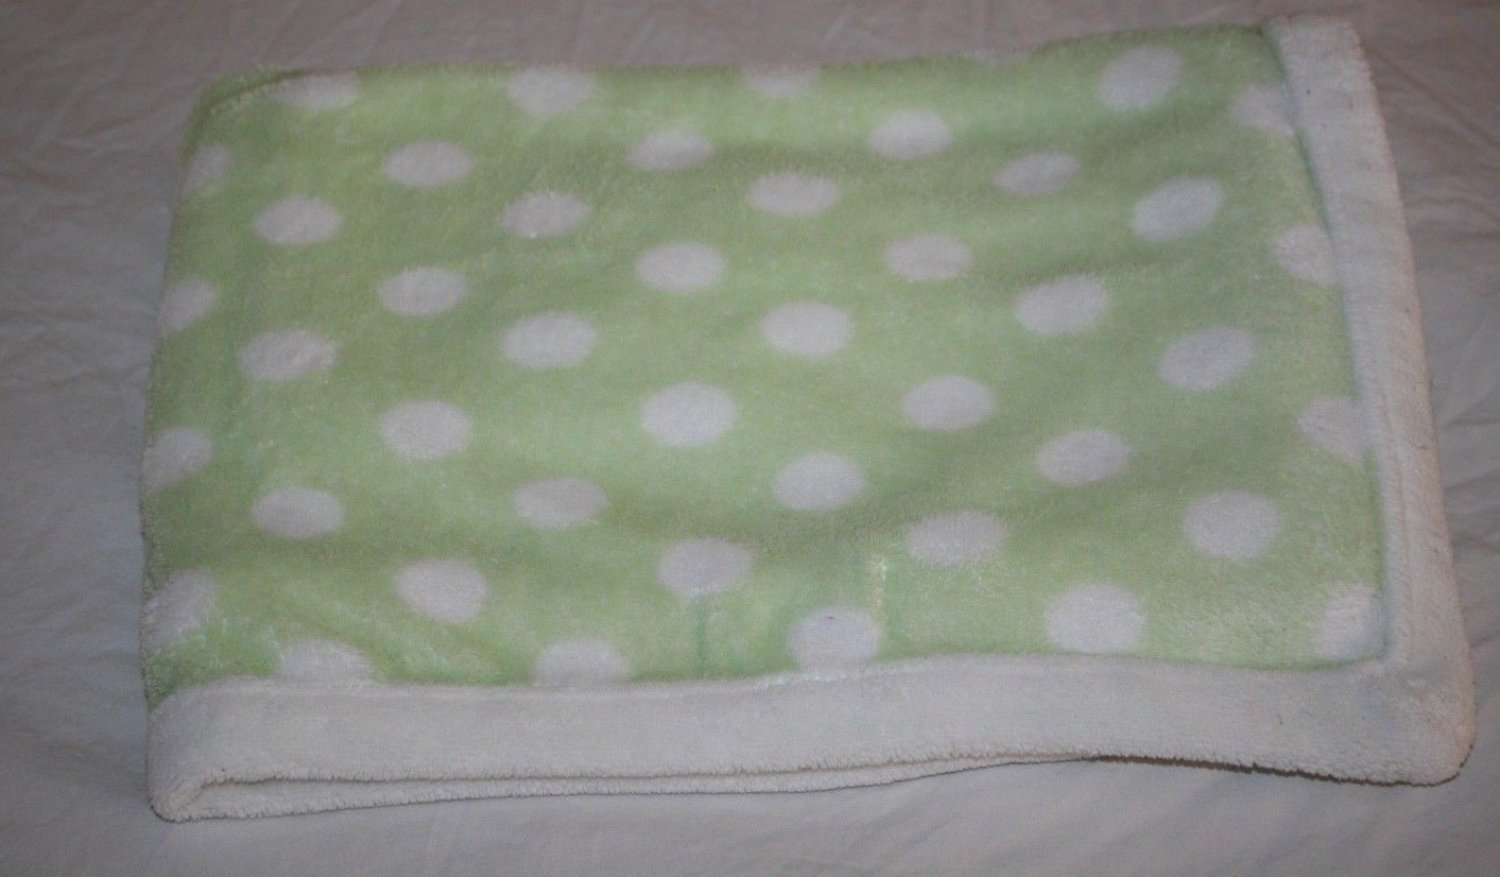 Blankets and Beyond BABY BLANKET Green & White Polka Dots Trim Edge Soft Plush